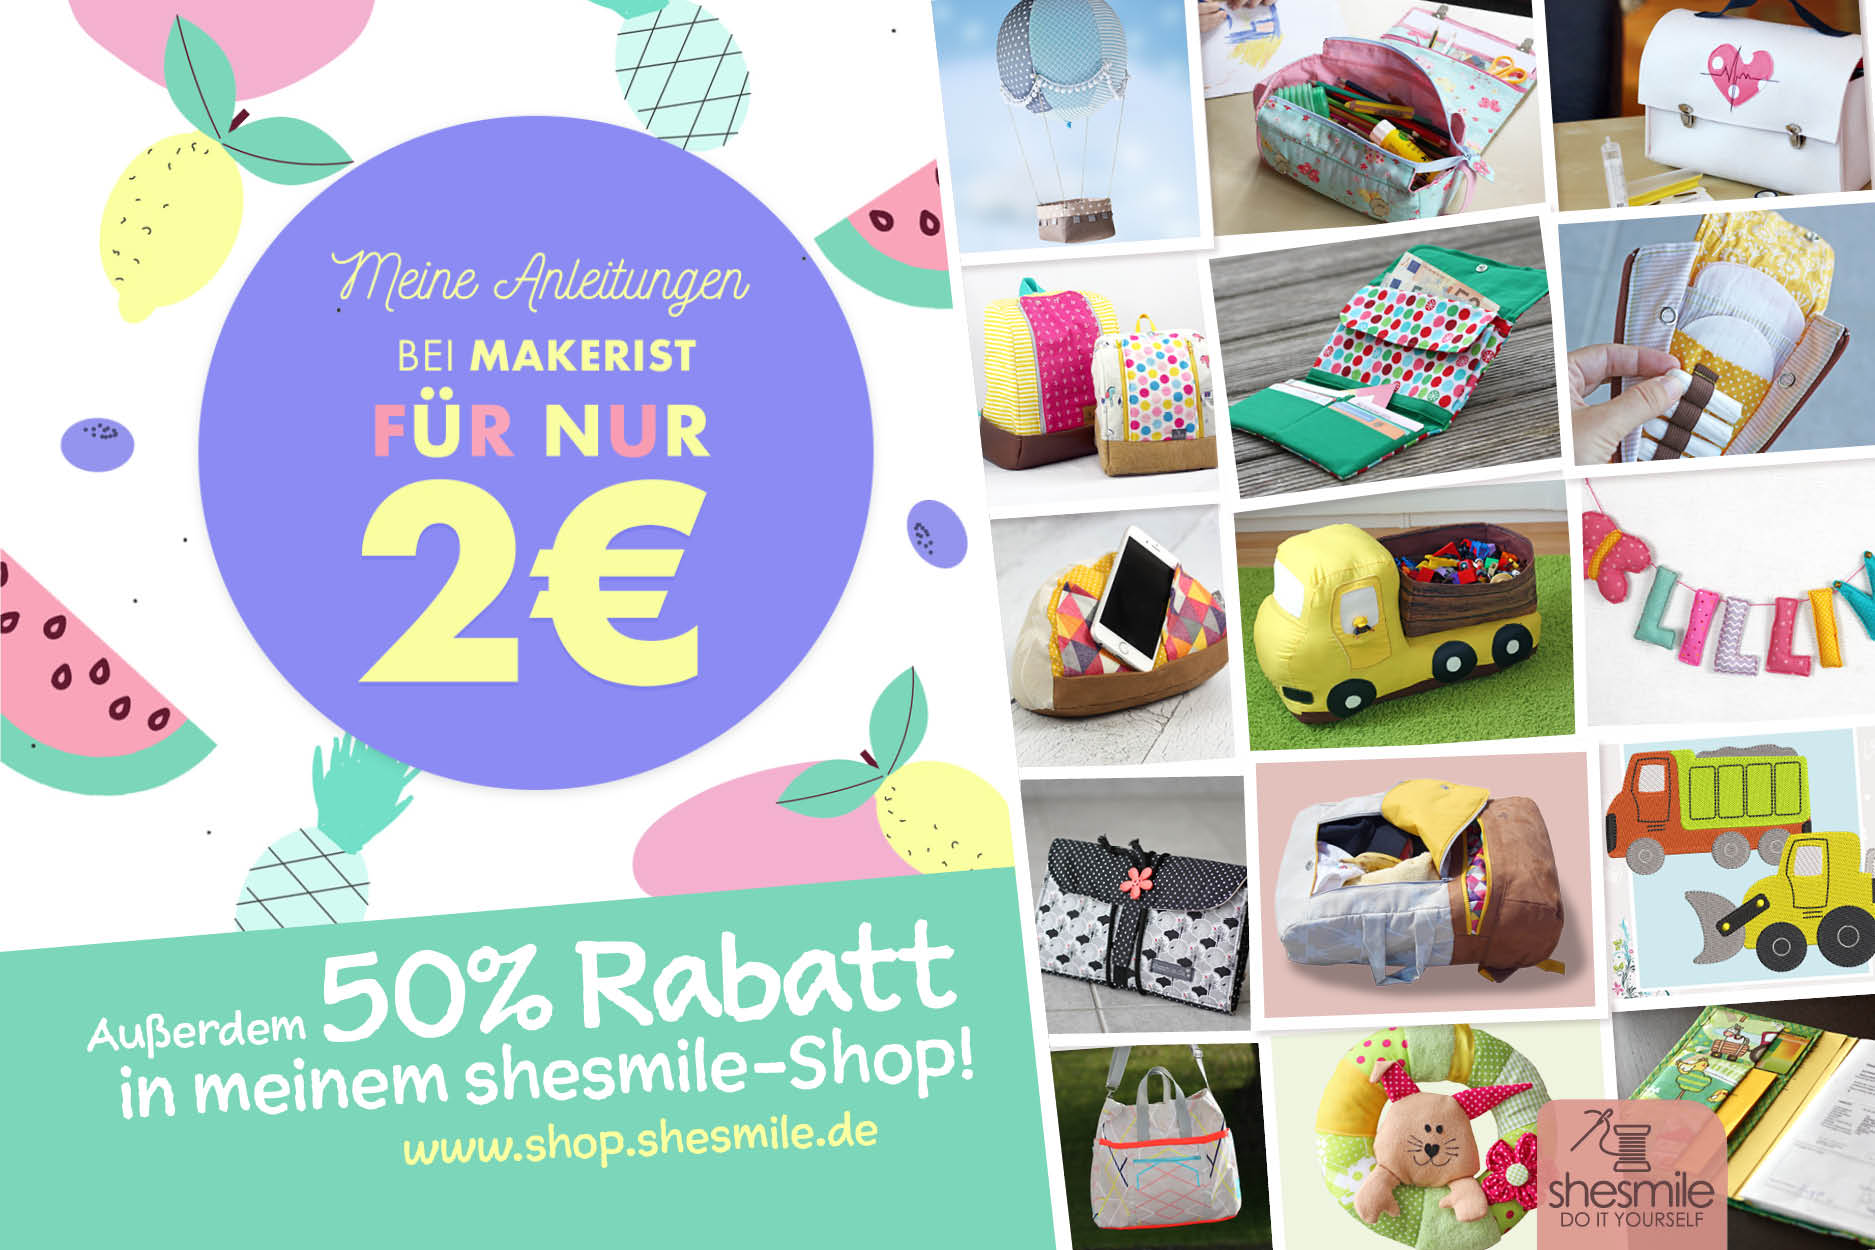 2 EUR Aktion bei Makerist + 50% Rabatt-Aktion bei shesmile!